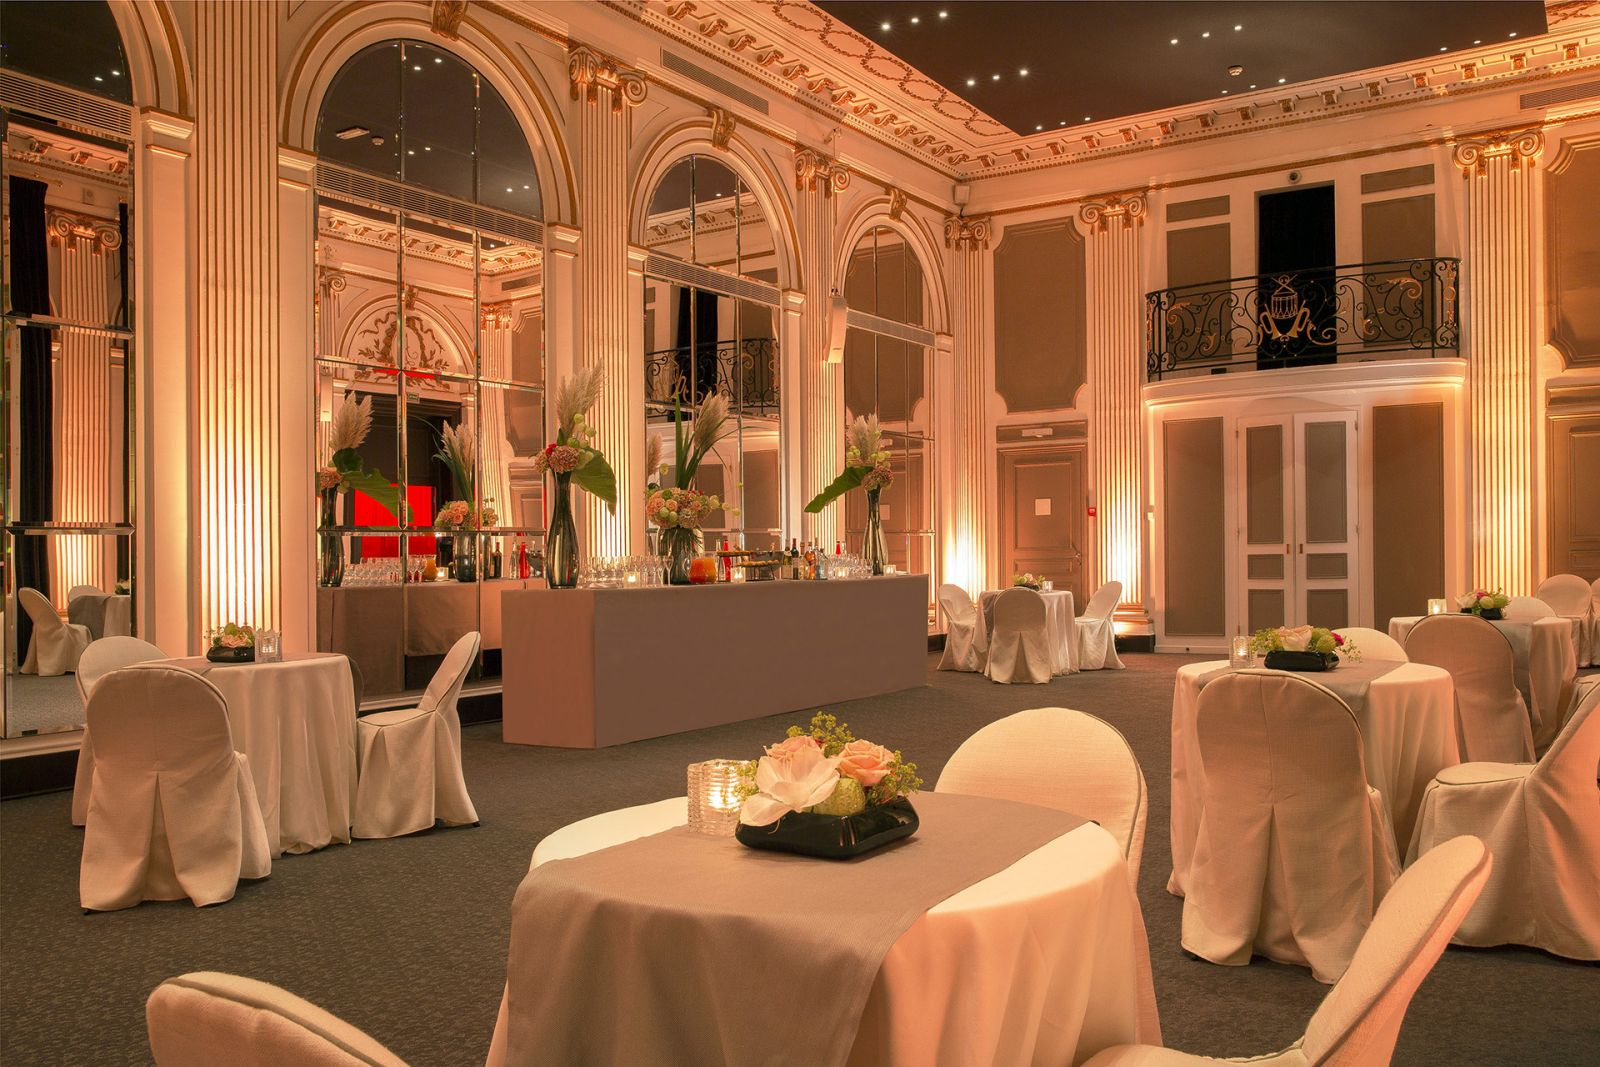 Restaurant gastronomique Paris - Pershing Hall